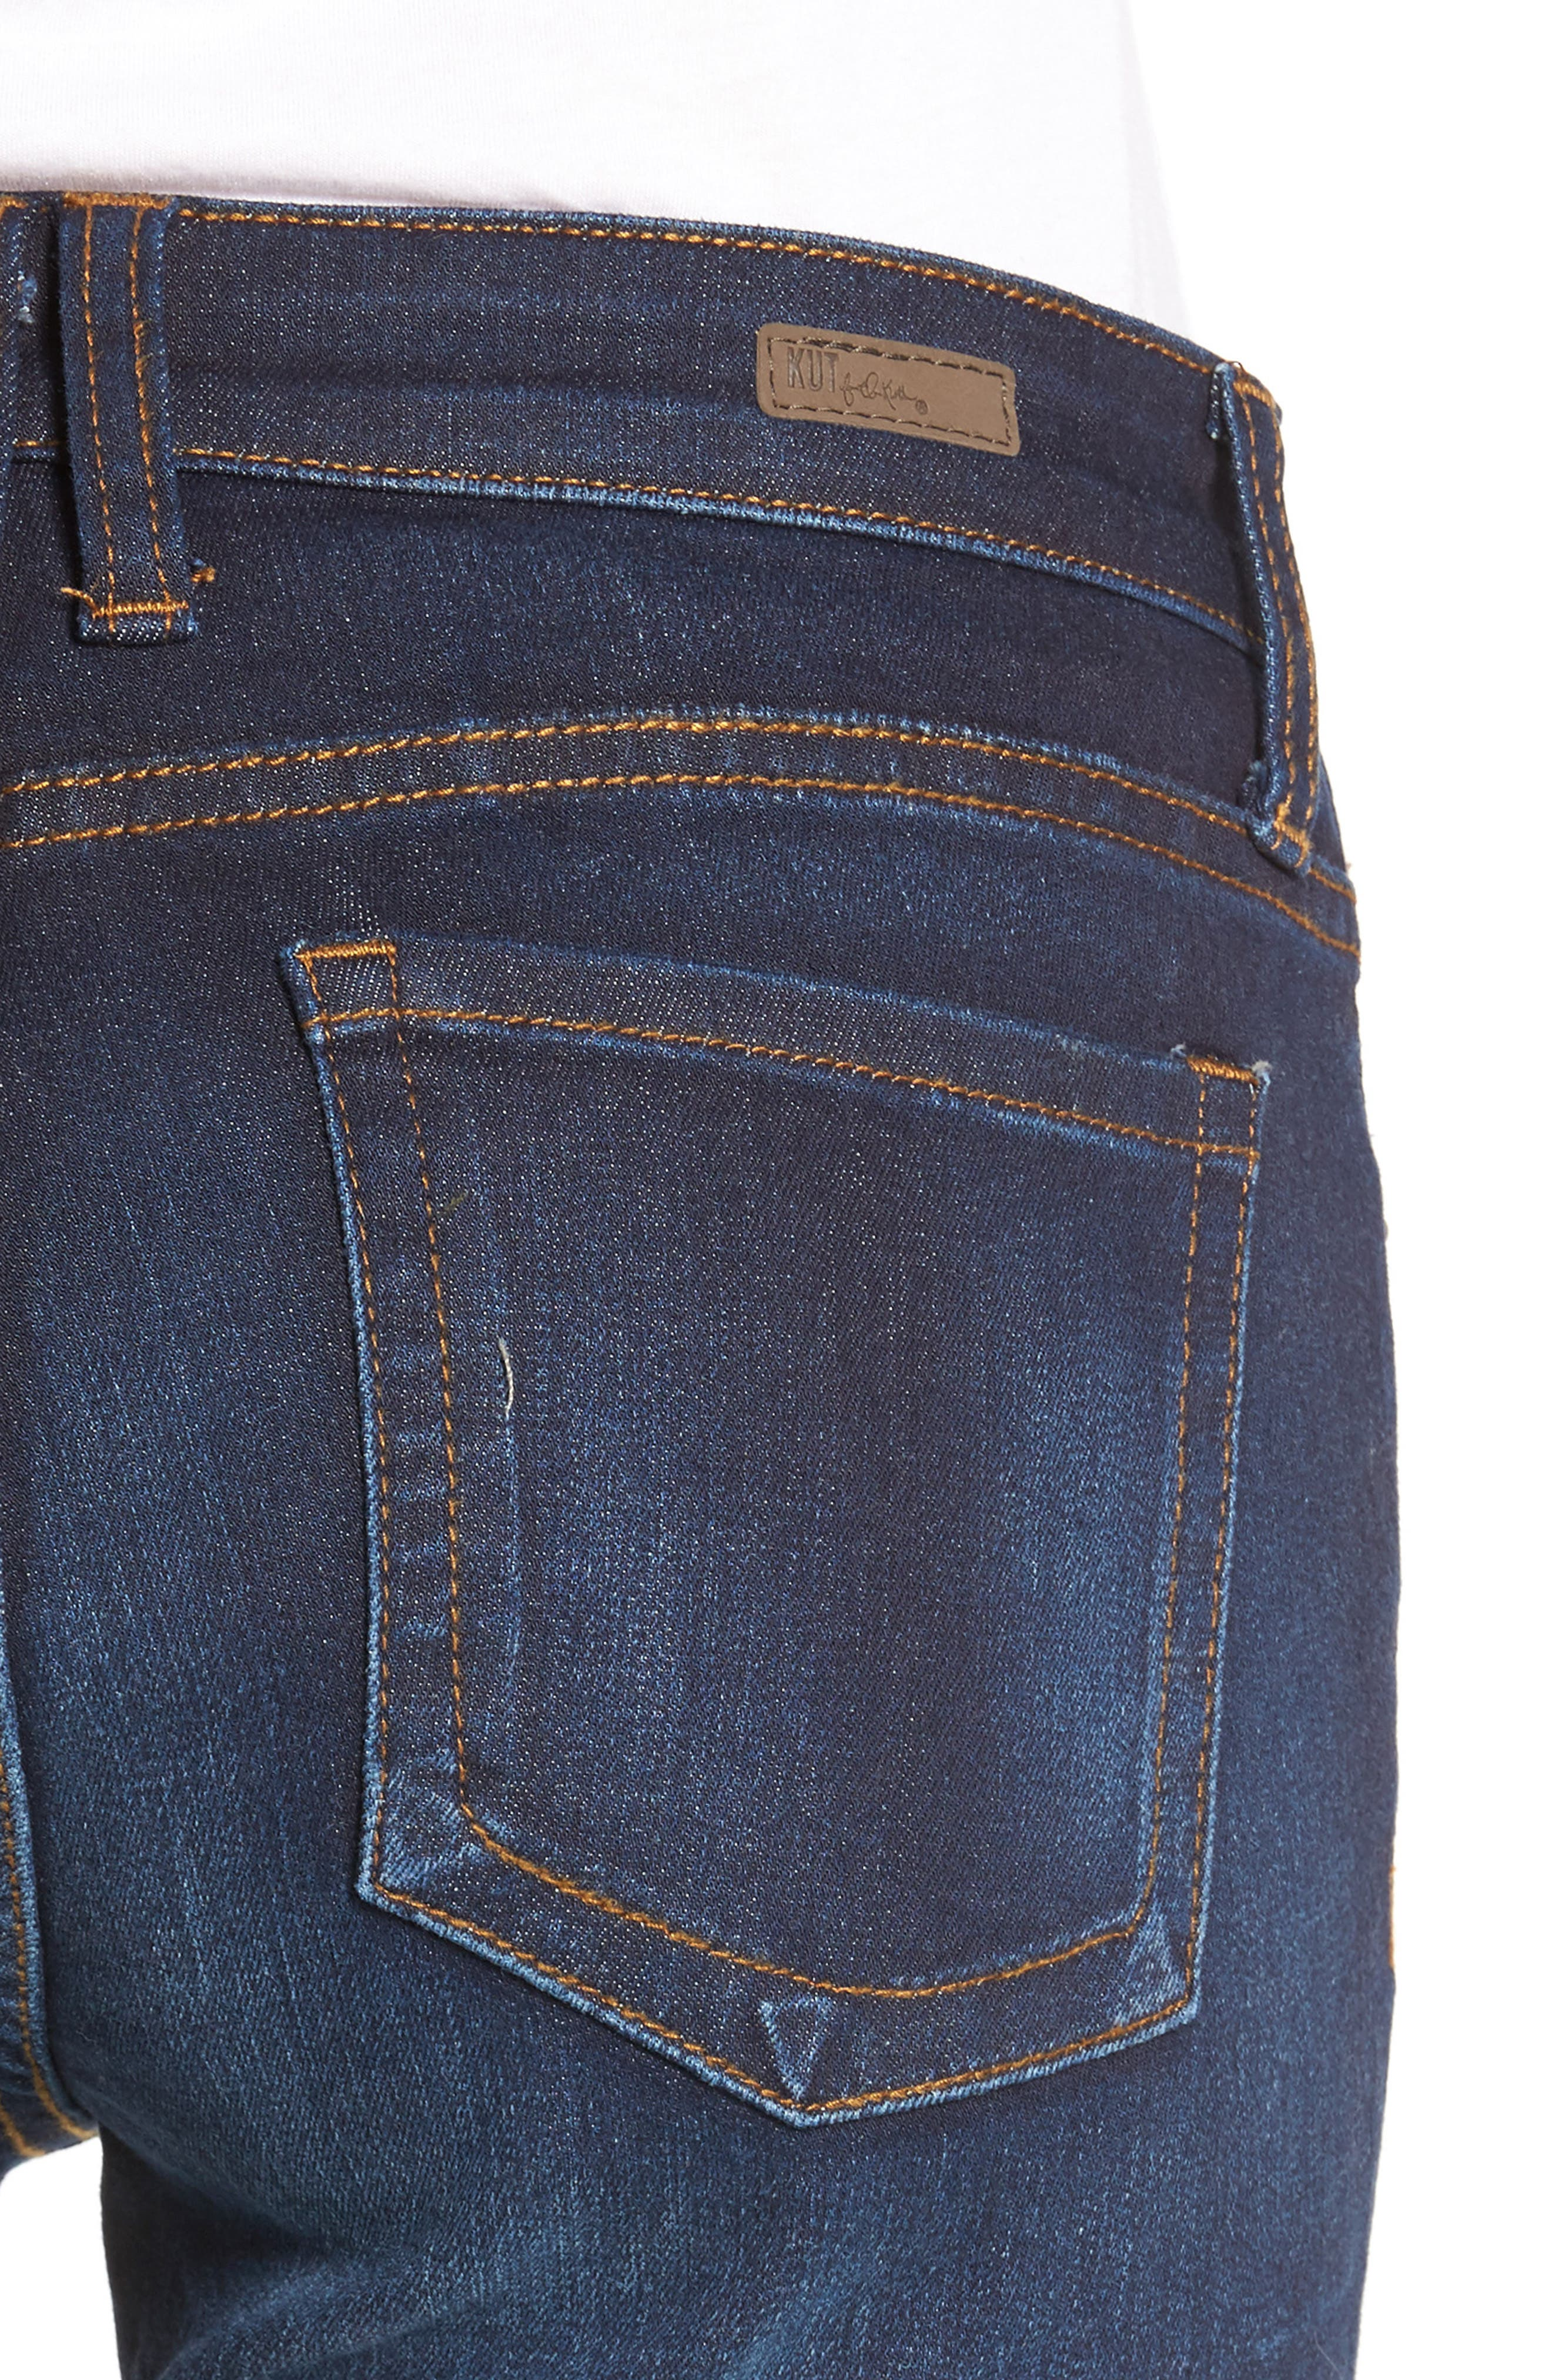 Alternate Image 4  - KUT from the Kloth Catherine Boyfriend Jeans (Adaptability)